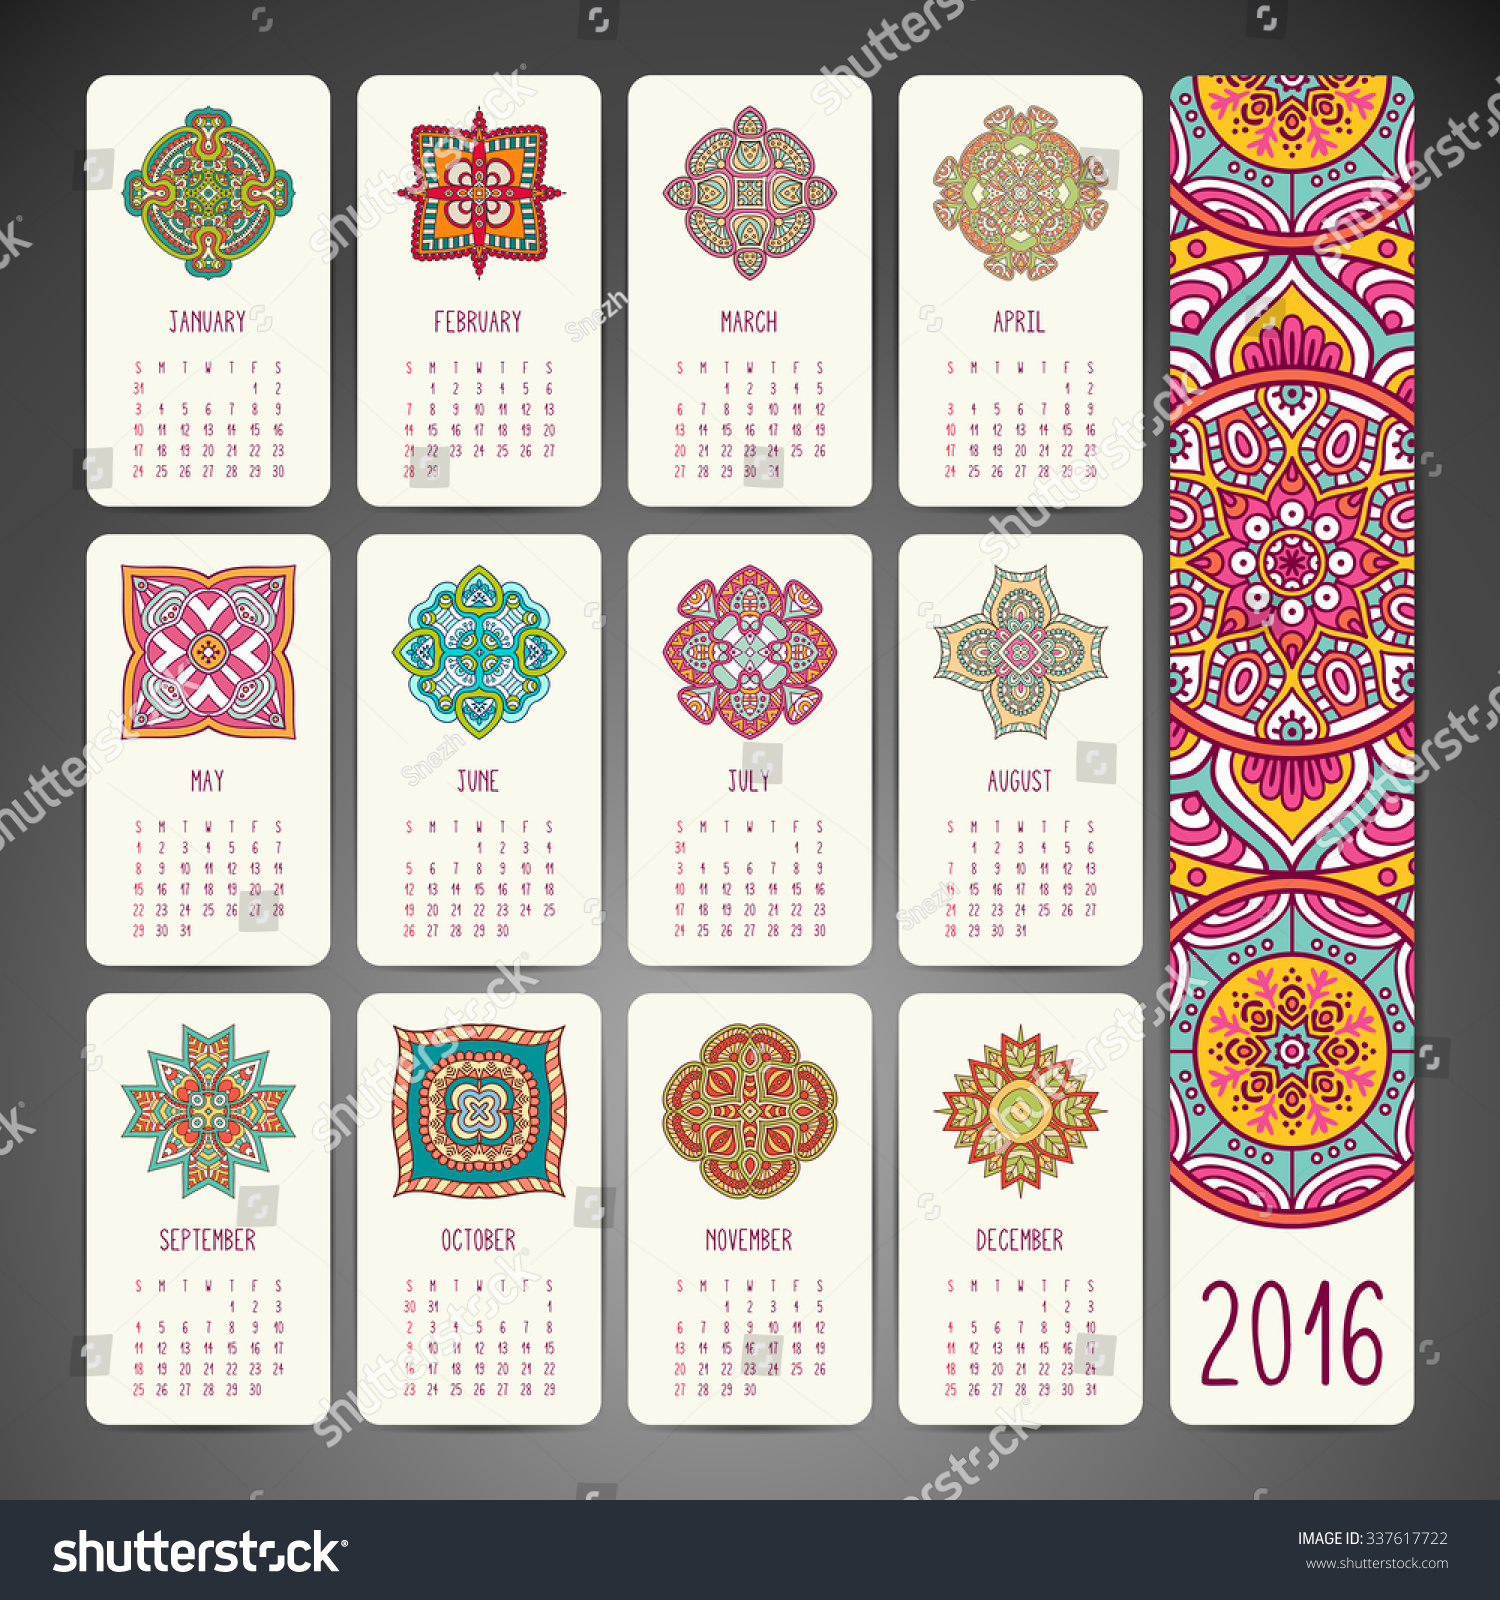 Calendar Vintage Vector : Calendar vintage decorative elements ornamental stock